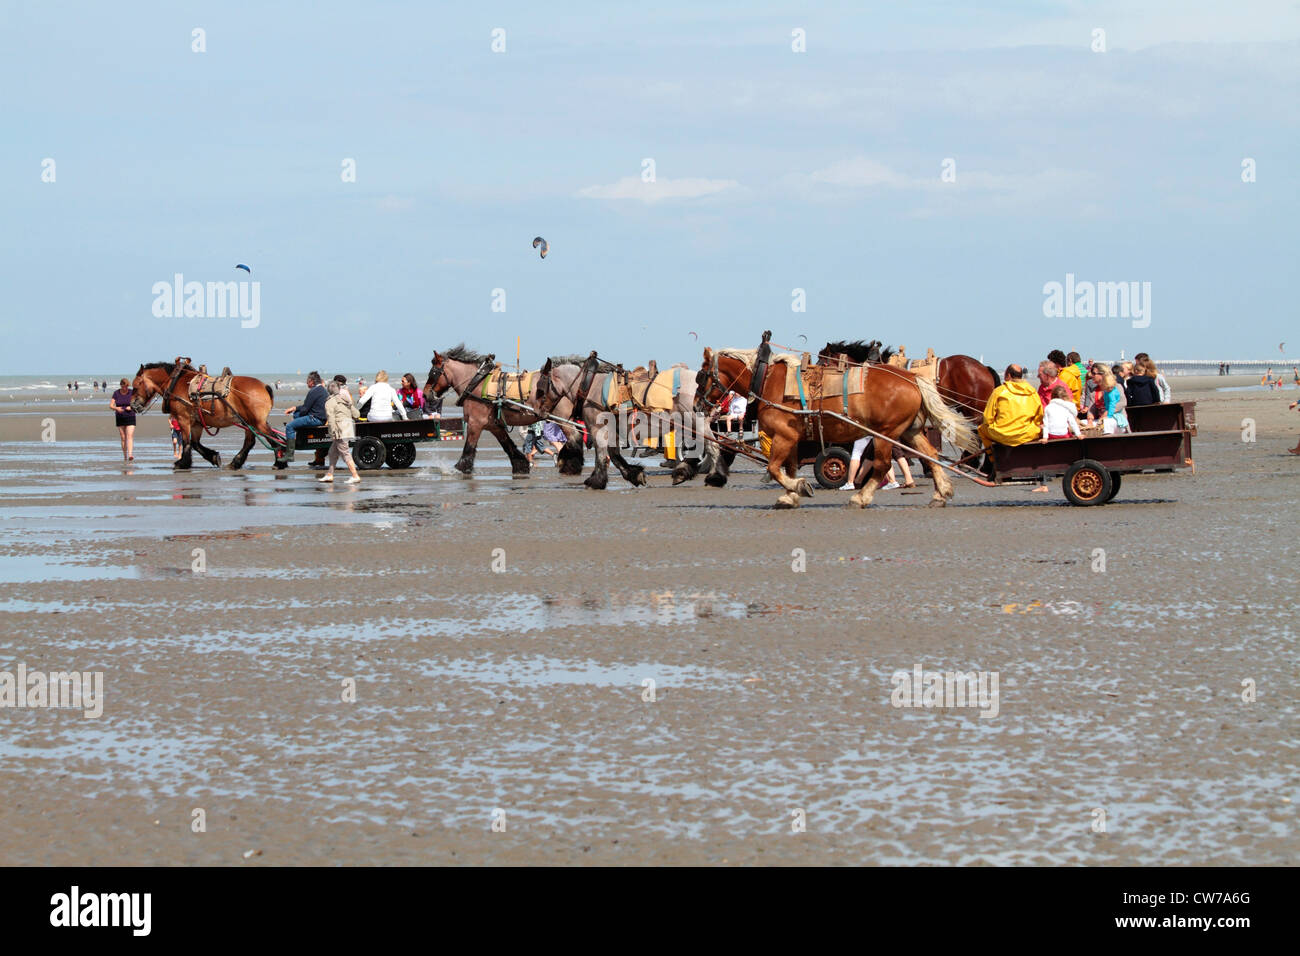 crab fisher with horses and tourists on the way to the coast, Belgium, Flanders, Oostduinkerke - Stock Image